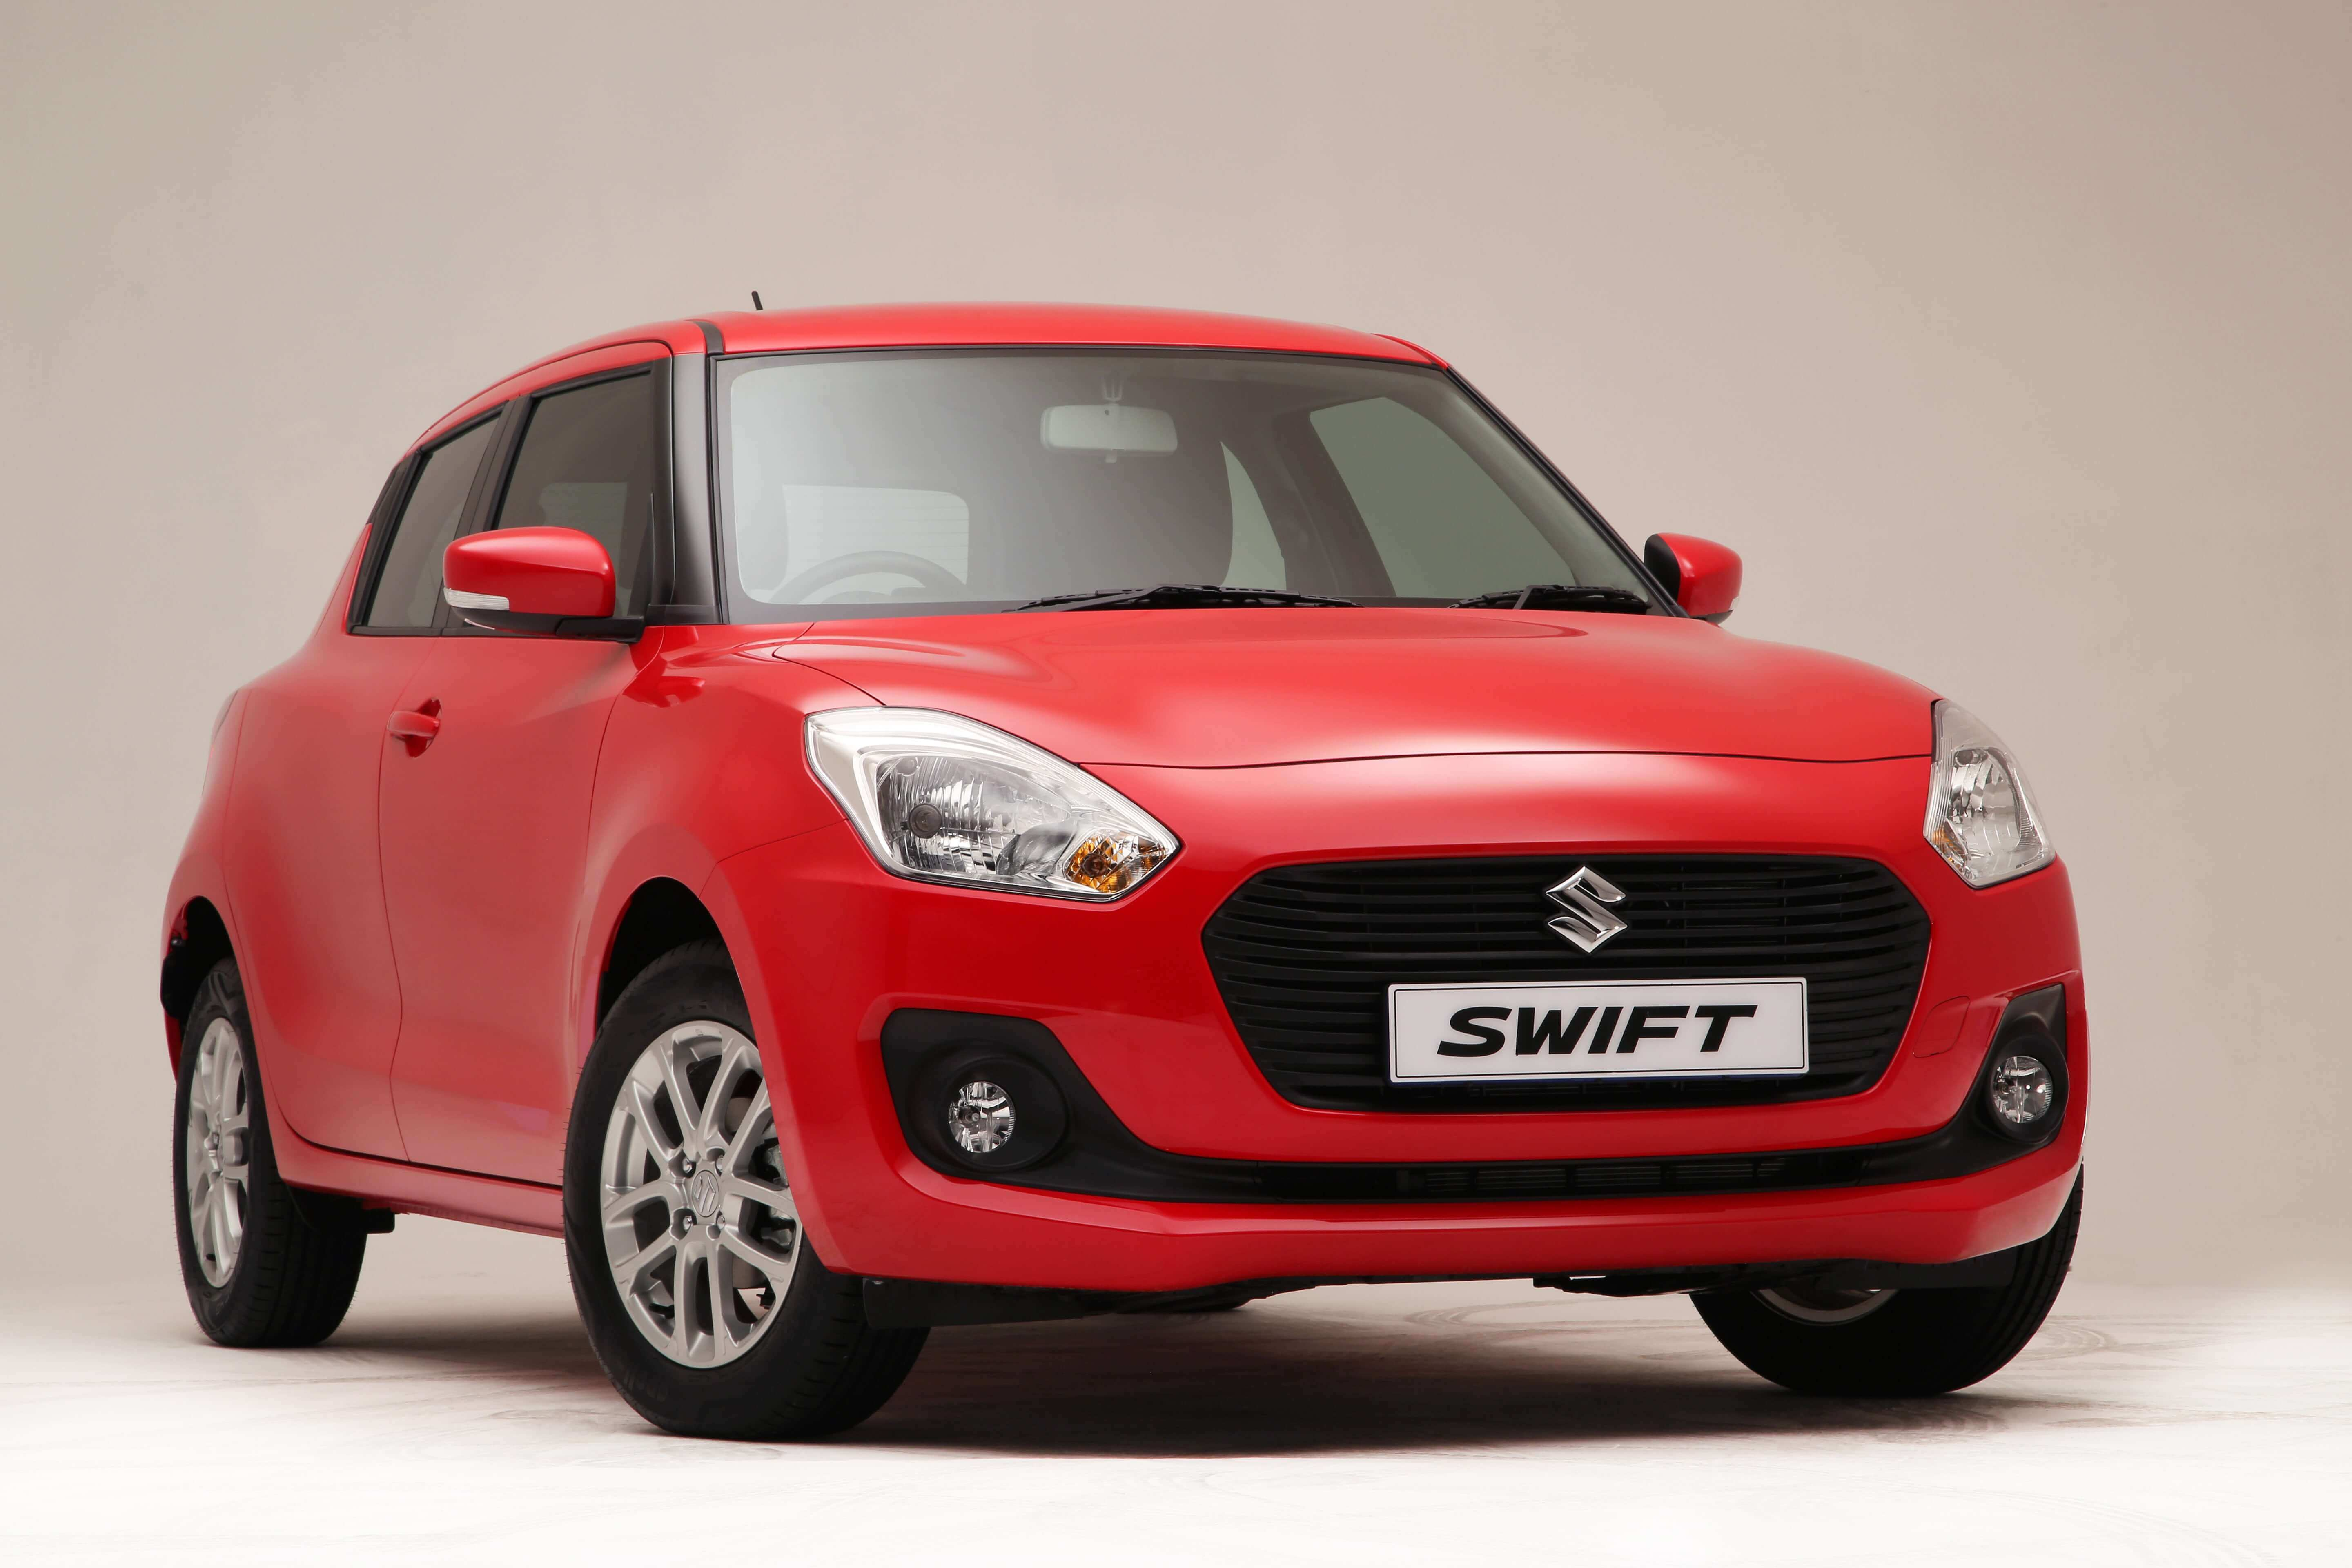 Suzuki Swift offers features and is easy to drive